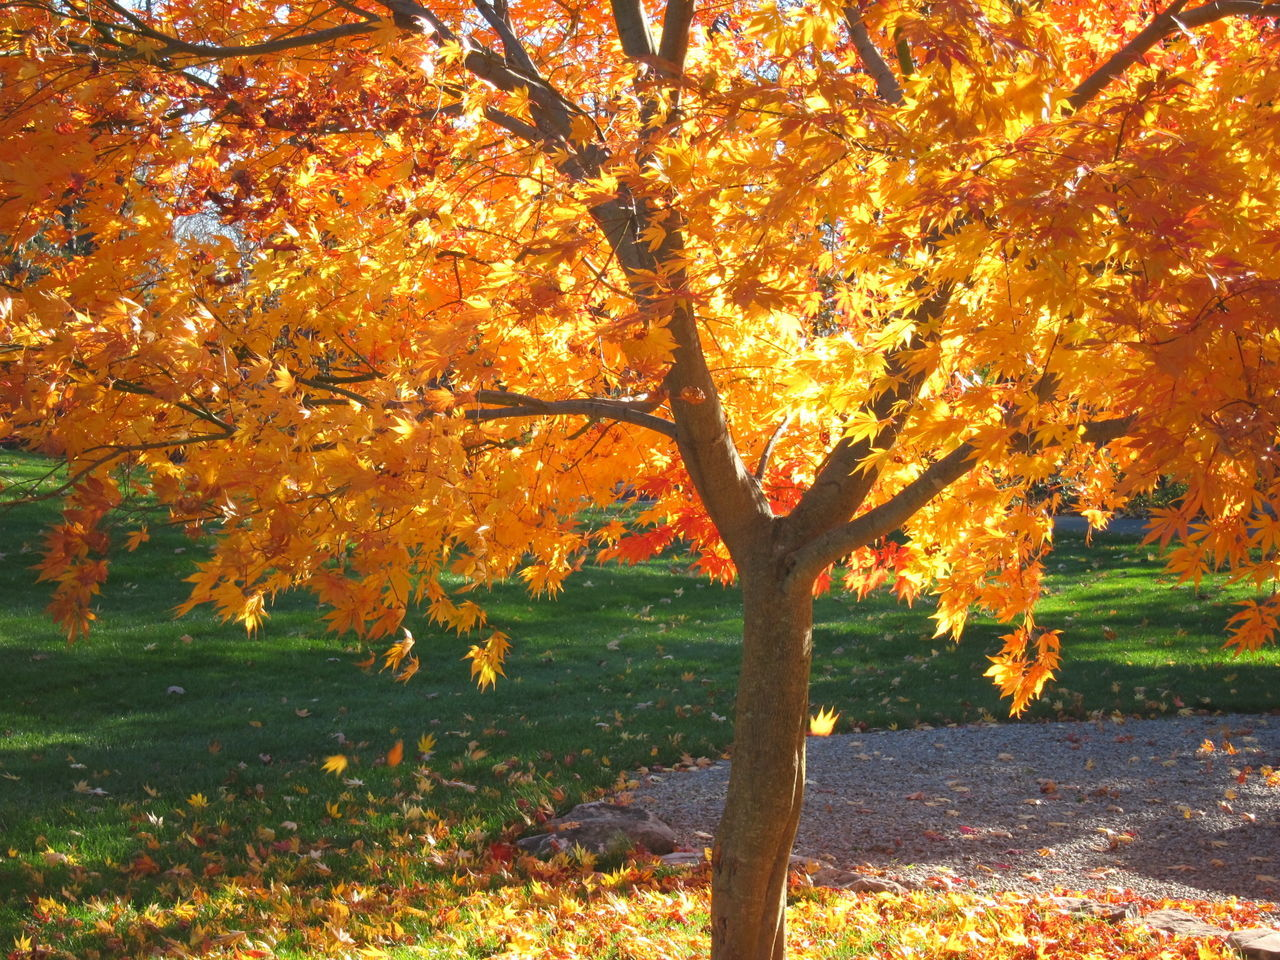 autumn, tree, change, orange color, leaf, nature, beauty in nature, tranquility, scenics, outdoors, tranquil scene, maple tree, branch, growth, no people, day, tree trunk, maple, sky